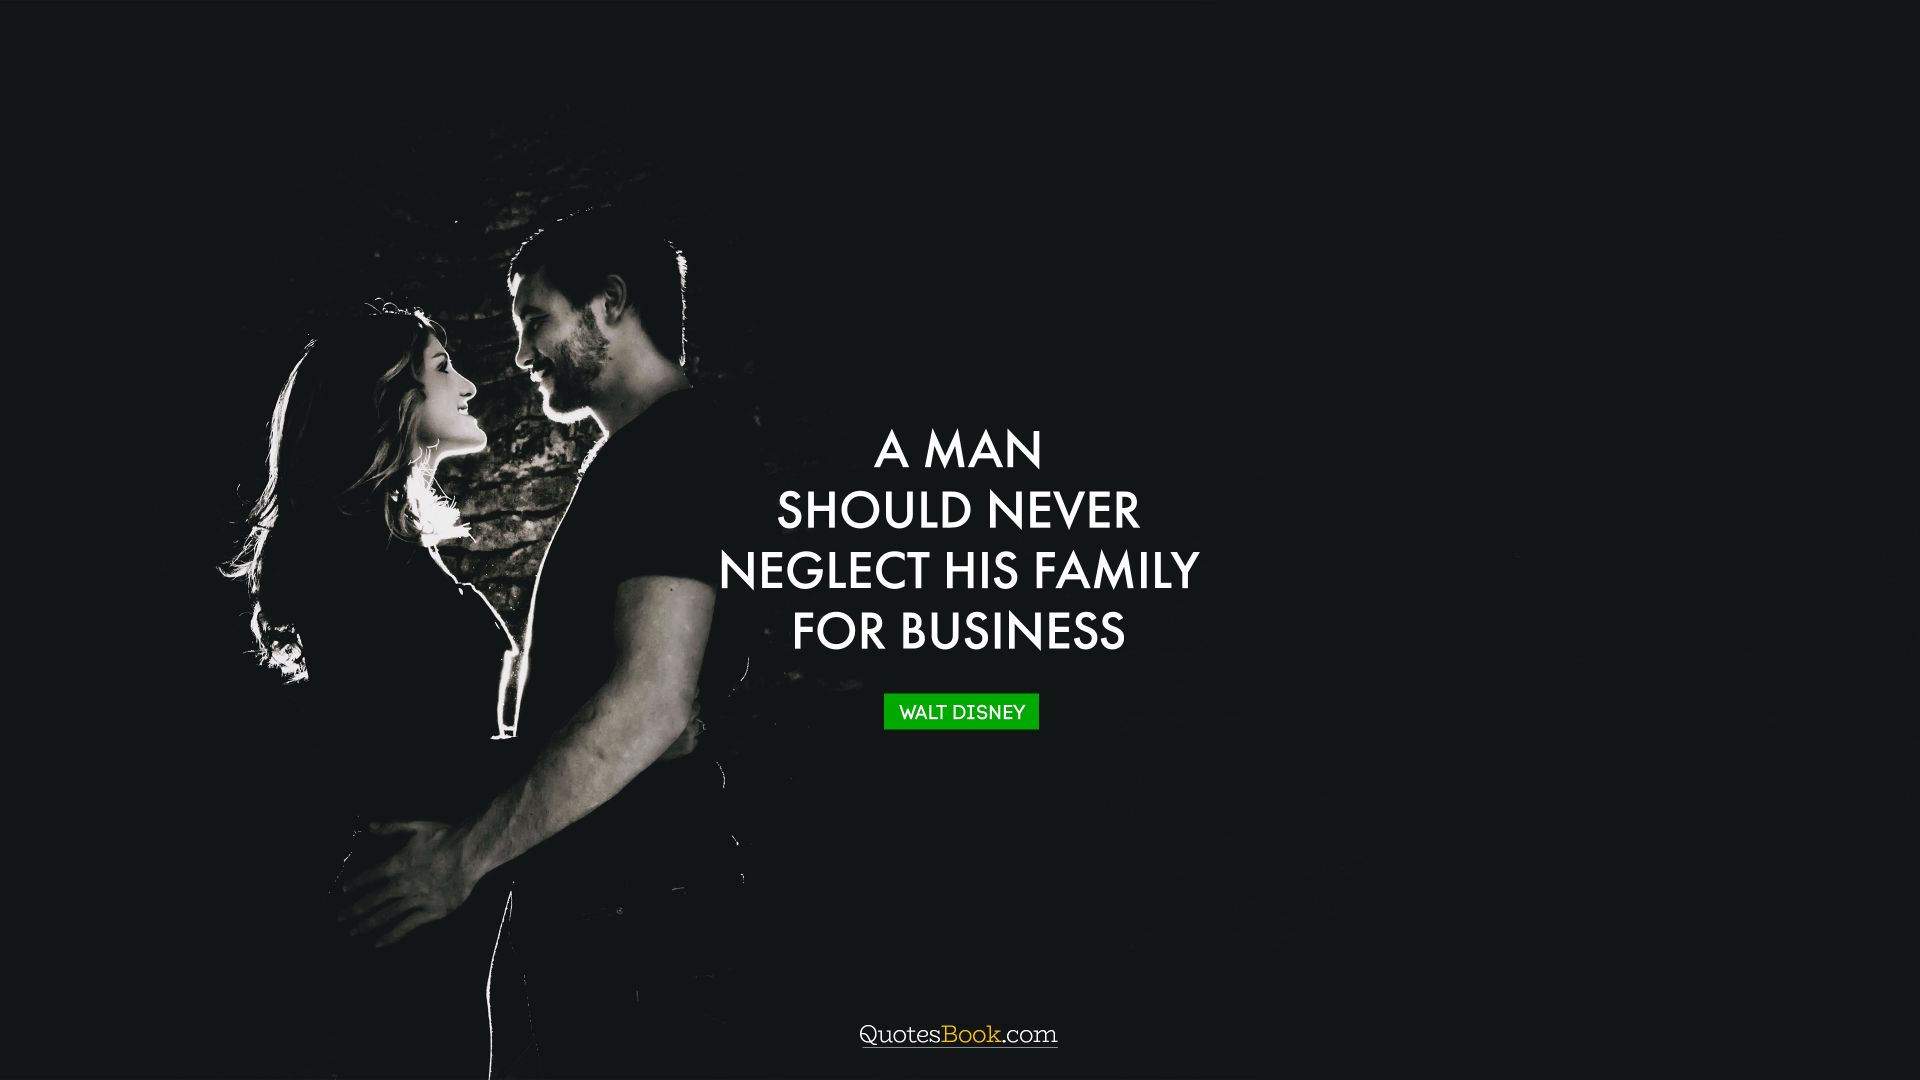 A man should never neglect his family for business. - Quote by Walt Disney